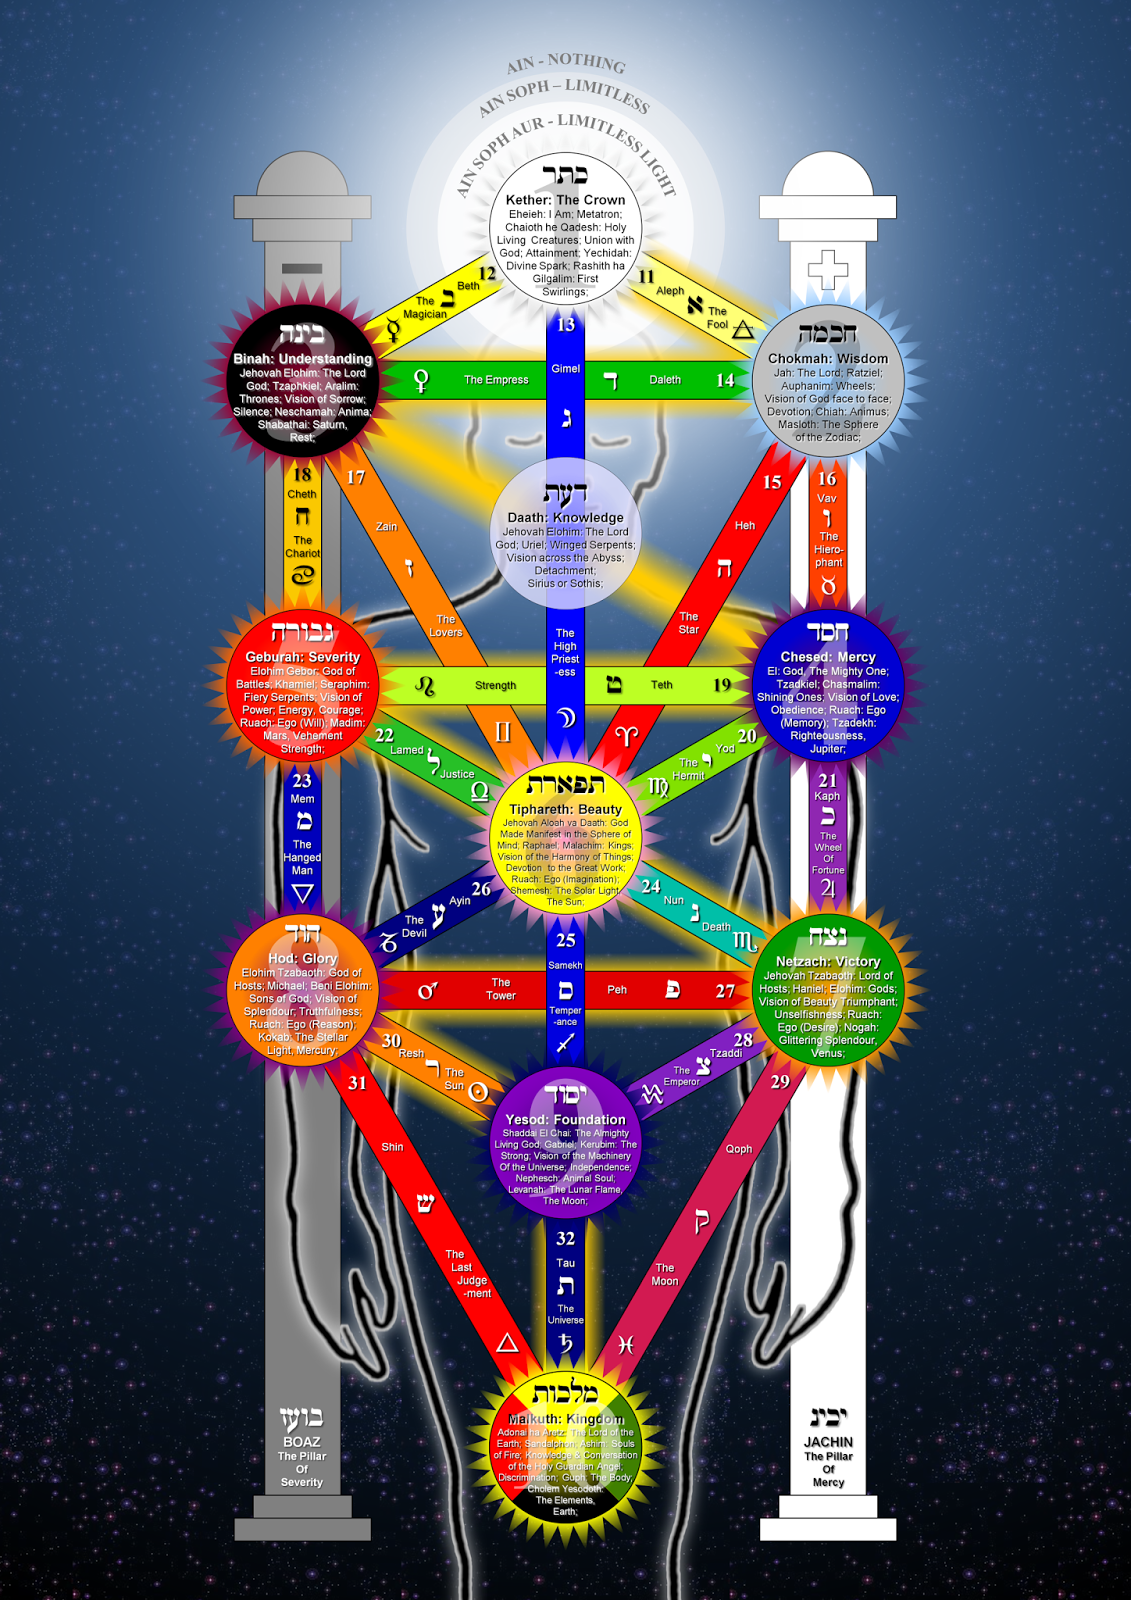 image of the Tree of Life symbol of Qabalah